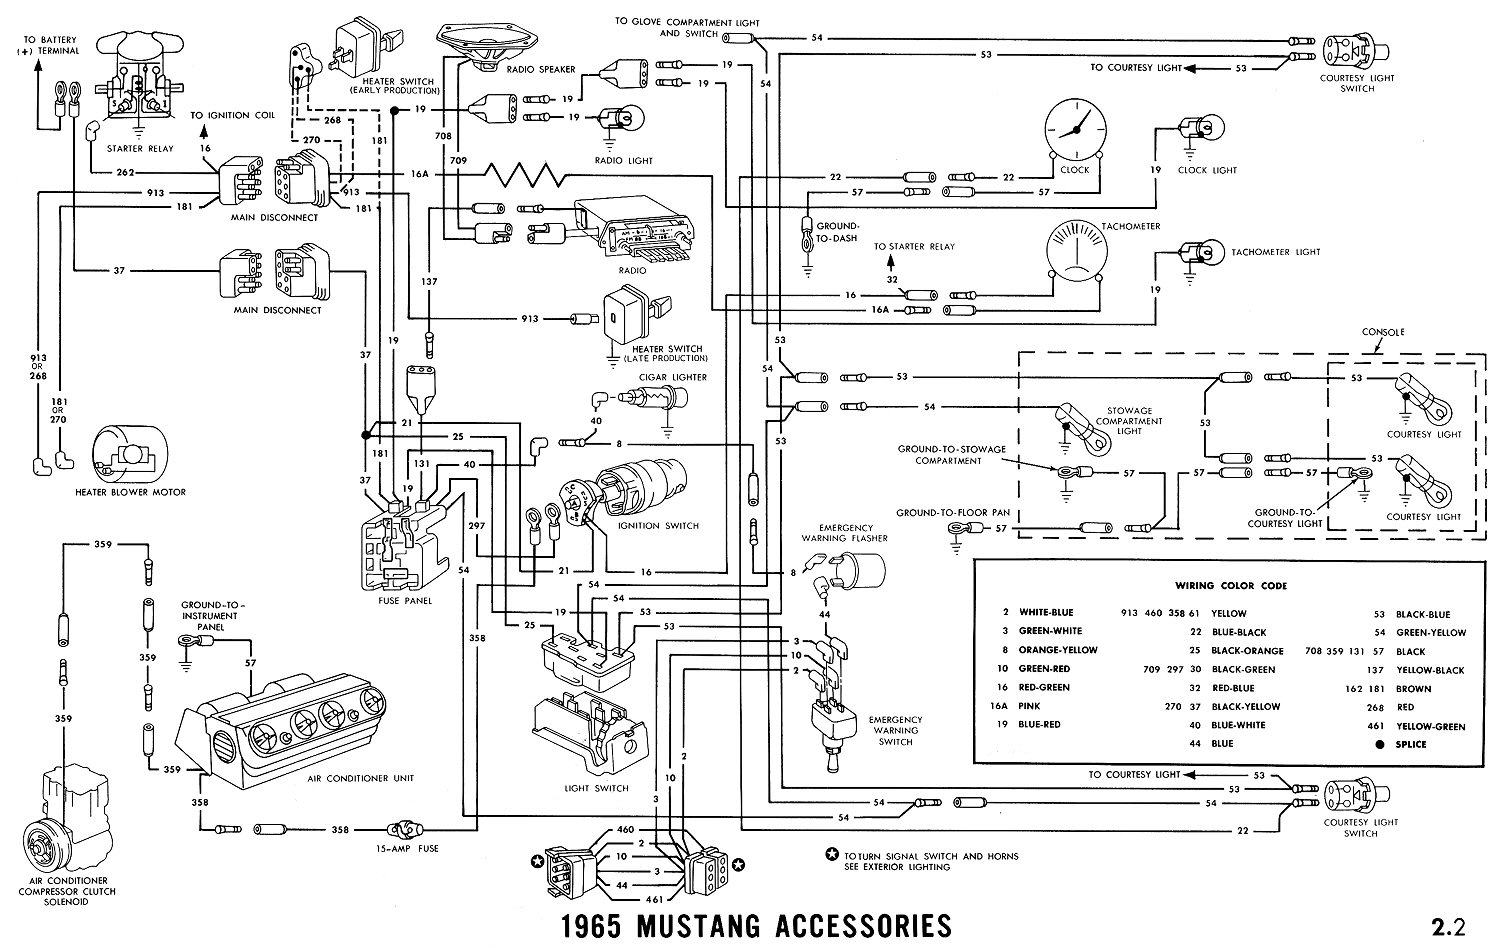 1971 Mustang Convertible Wiring Diagram Guide And Troubleshooting Ford On 1970 Solenoid Color Diagrams Scematic Rh 43 Jessicadonath De 1972